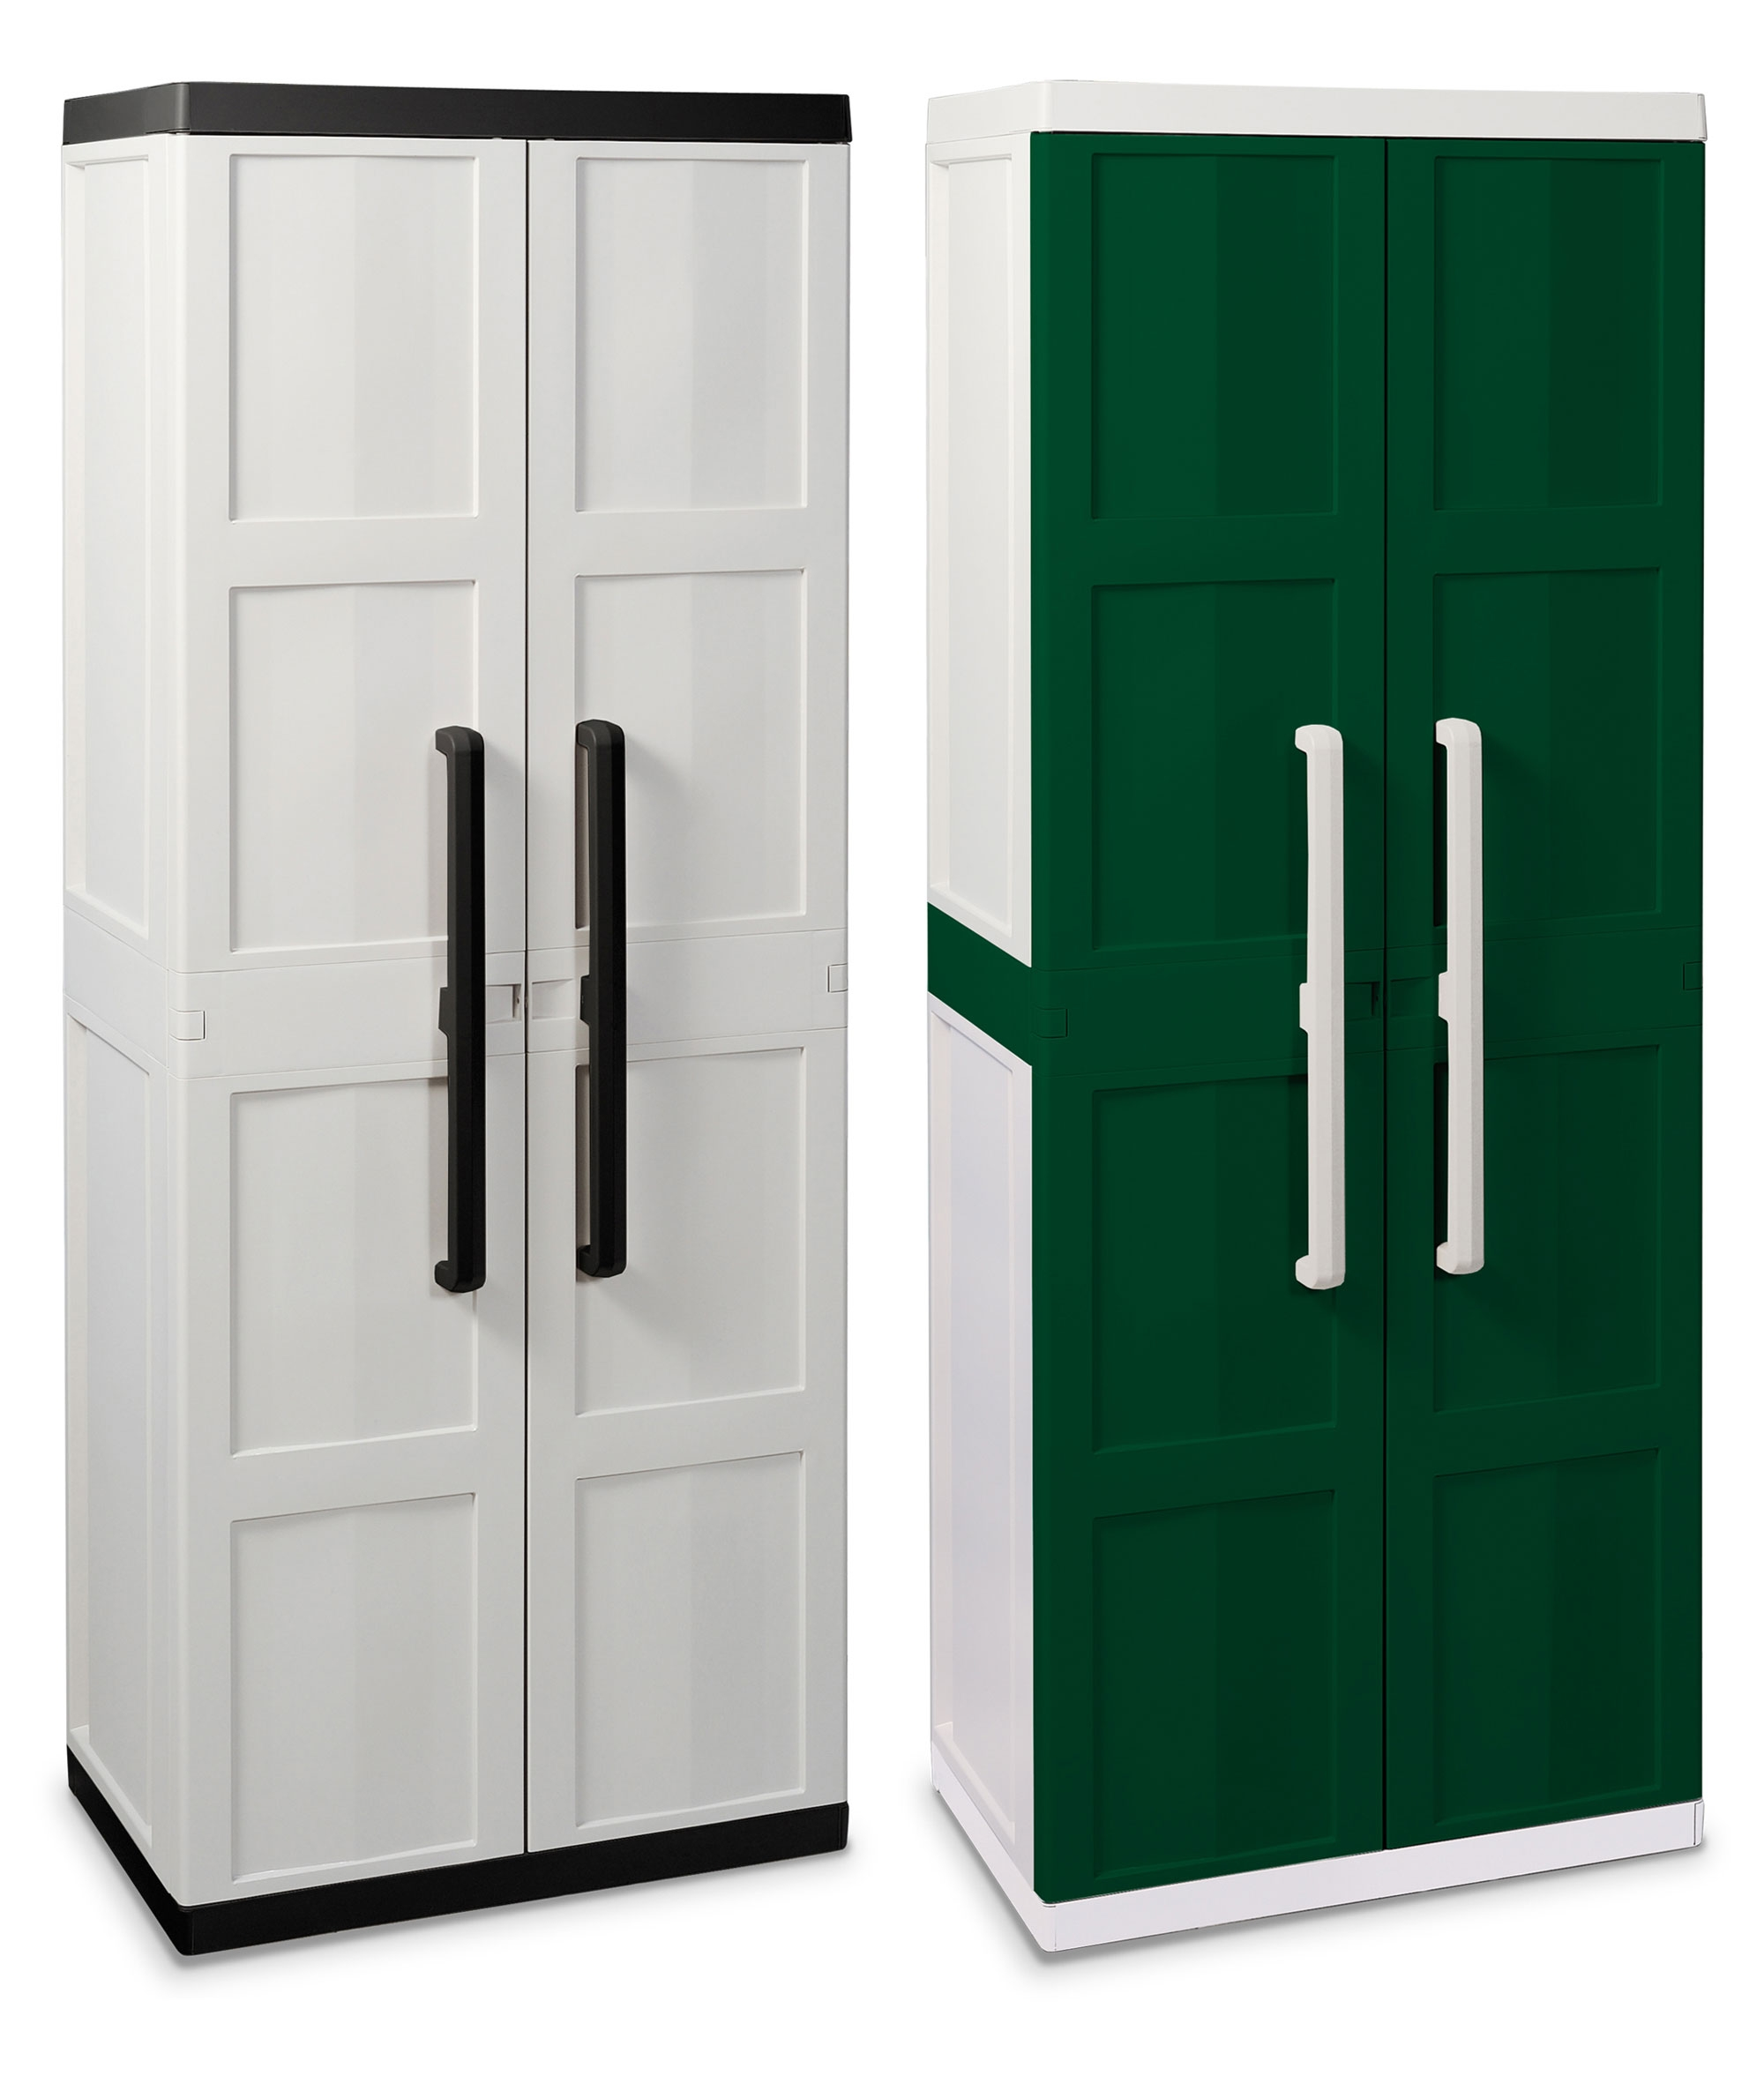 Industrial Indoor Storage Cabinets With Doors